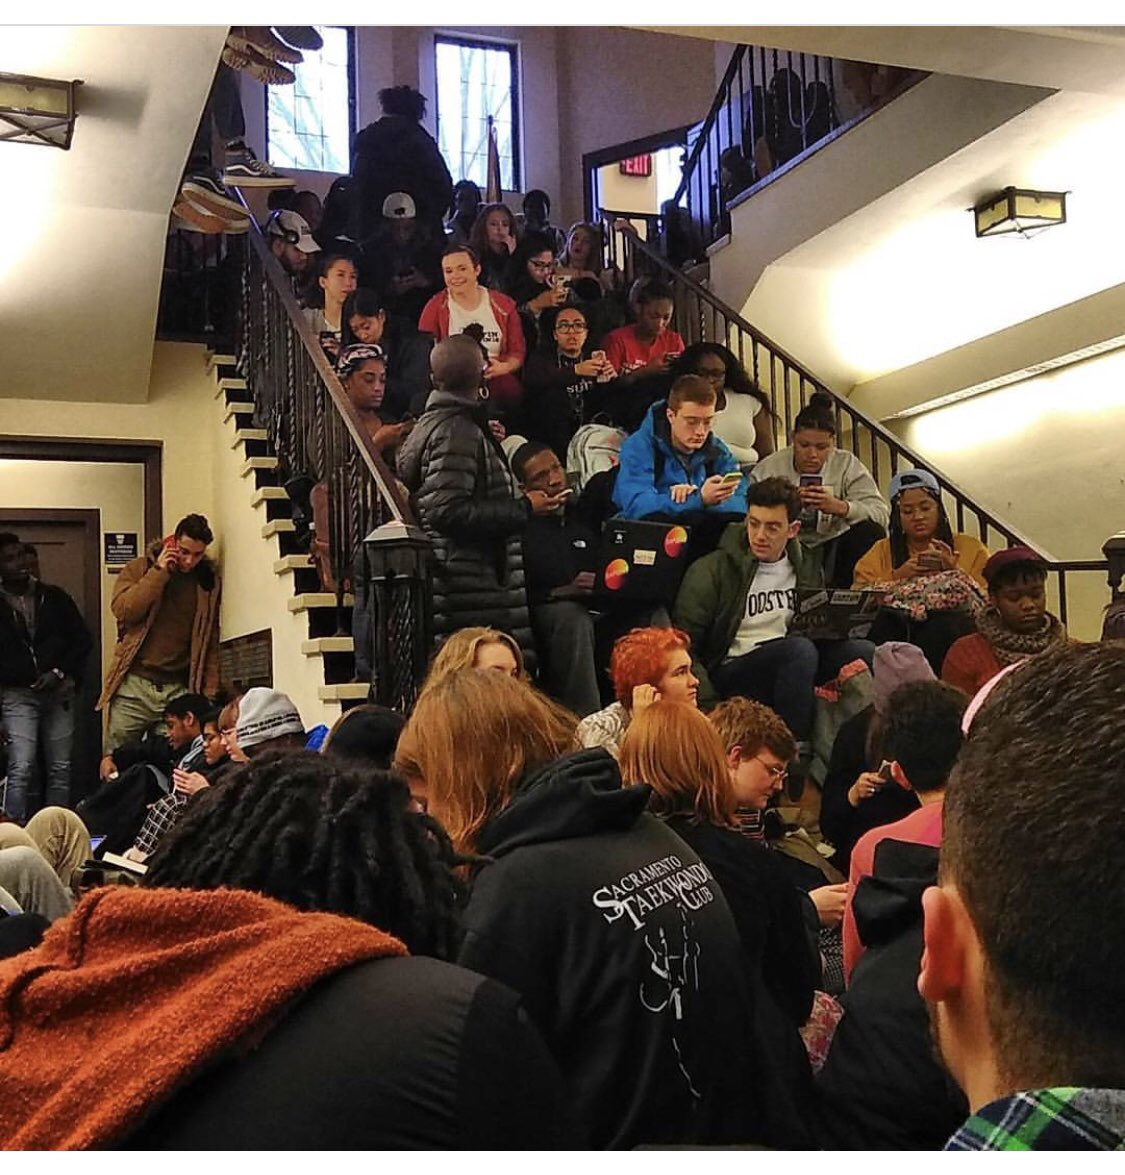 Image of students crowding a staircase and hallway.